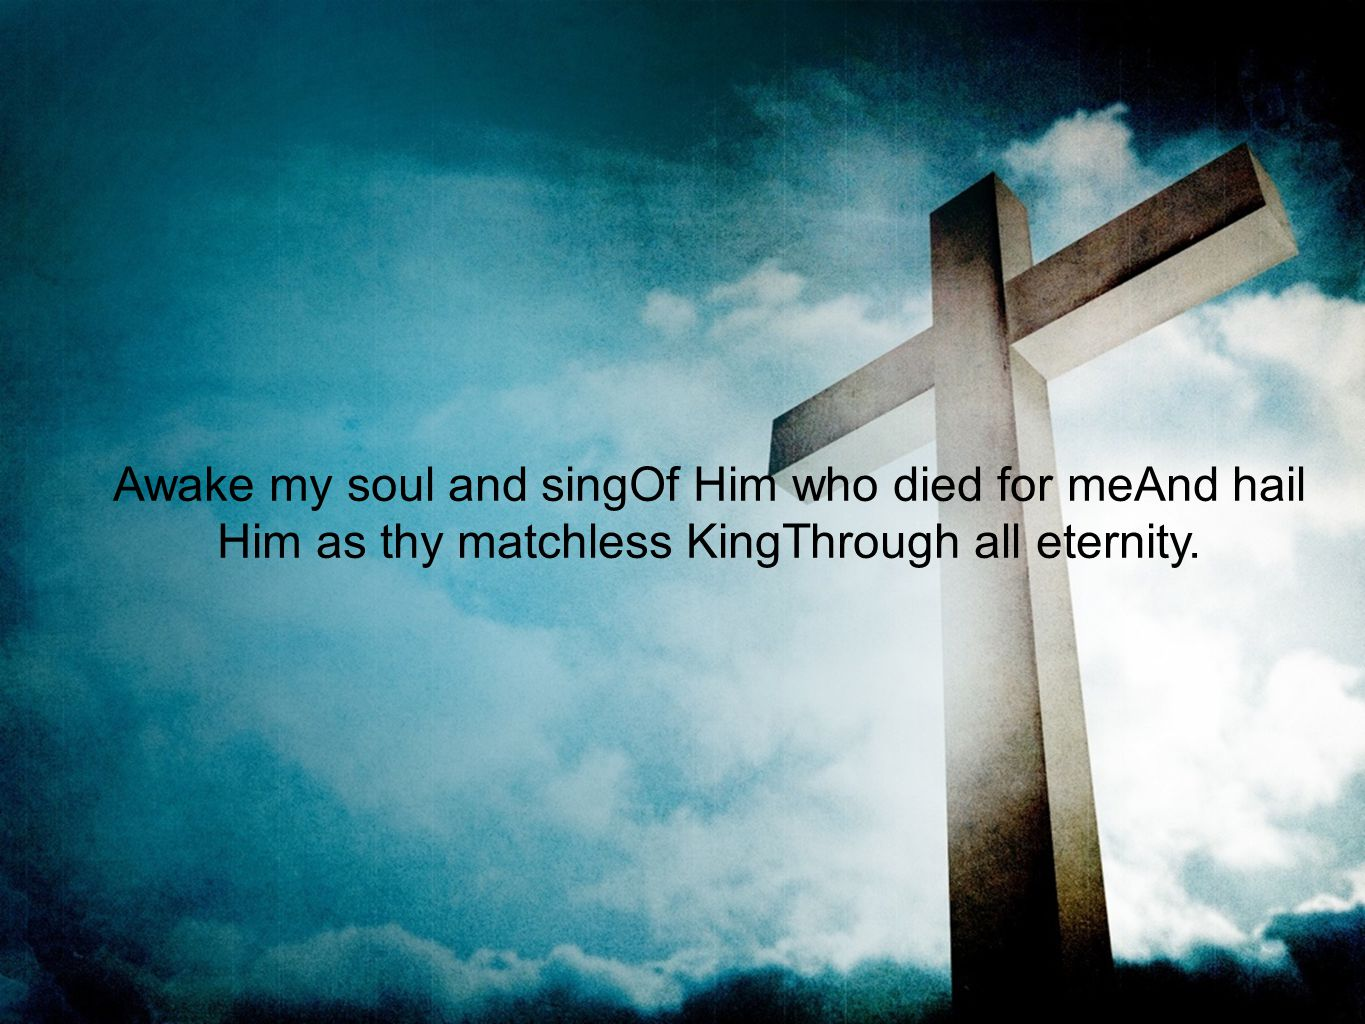 Awake my soul and singOf Him who died for meAnd hail Him as thy matchless KingThrough all eternity.